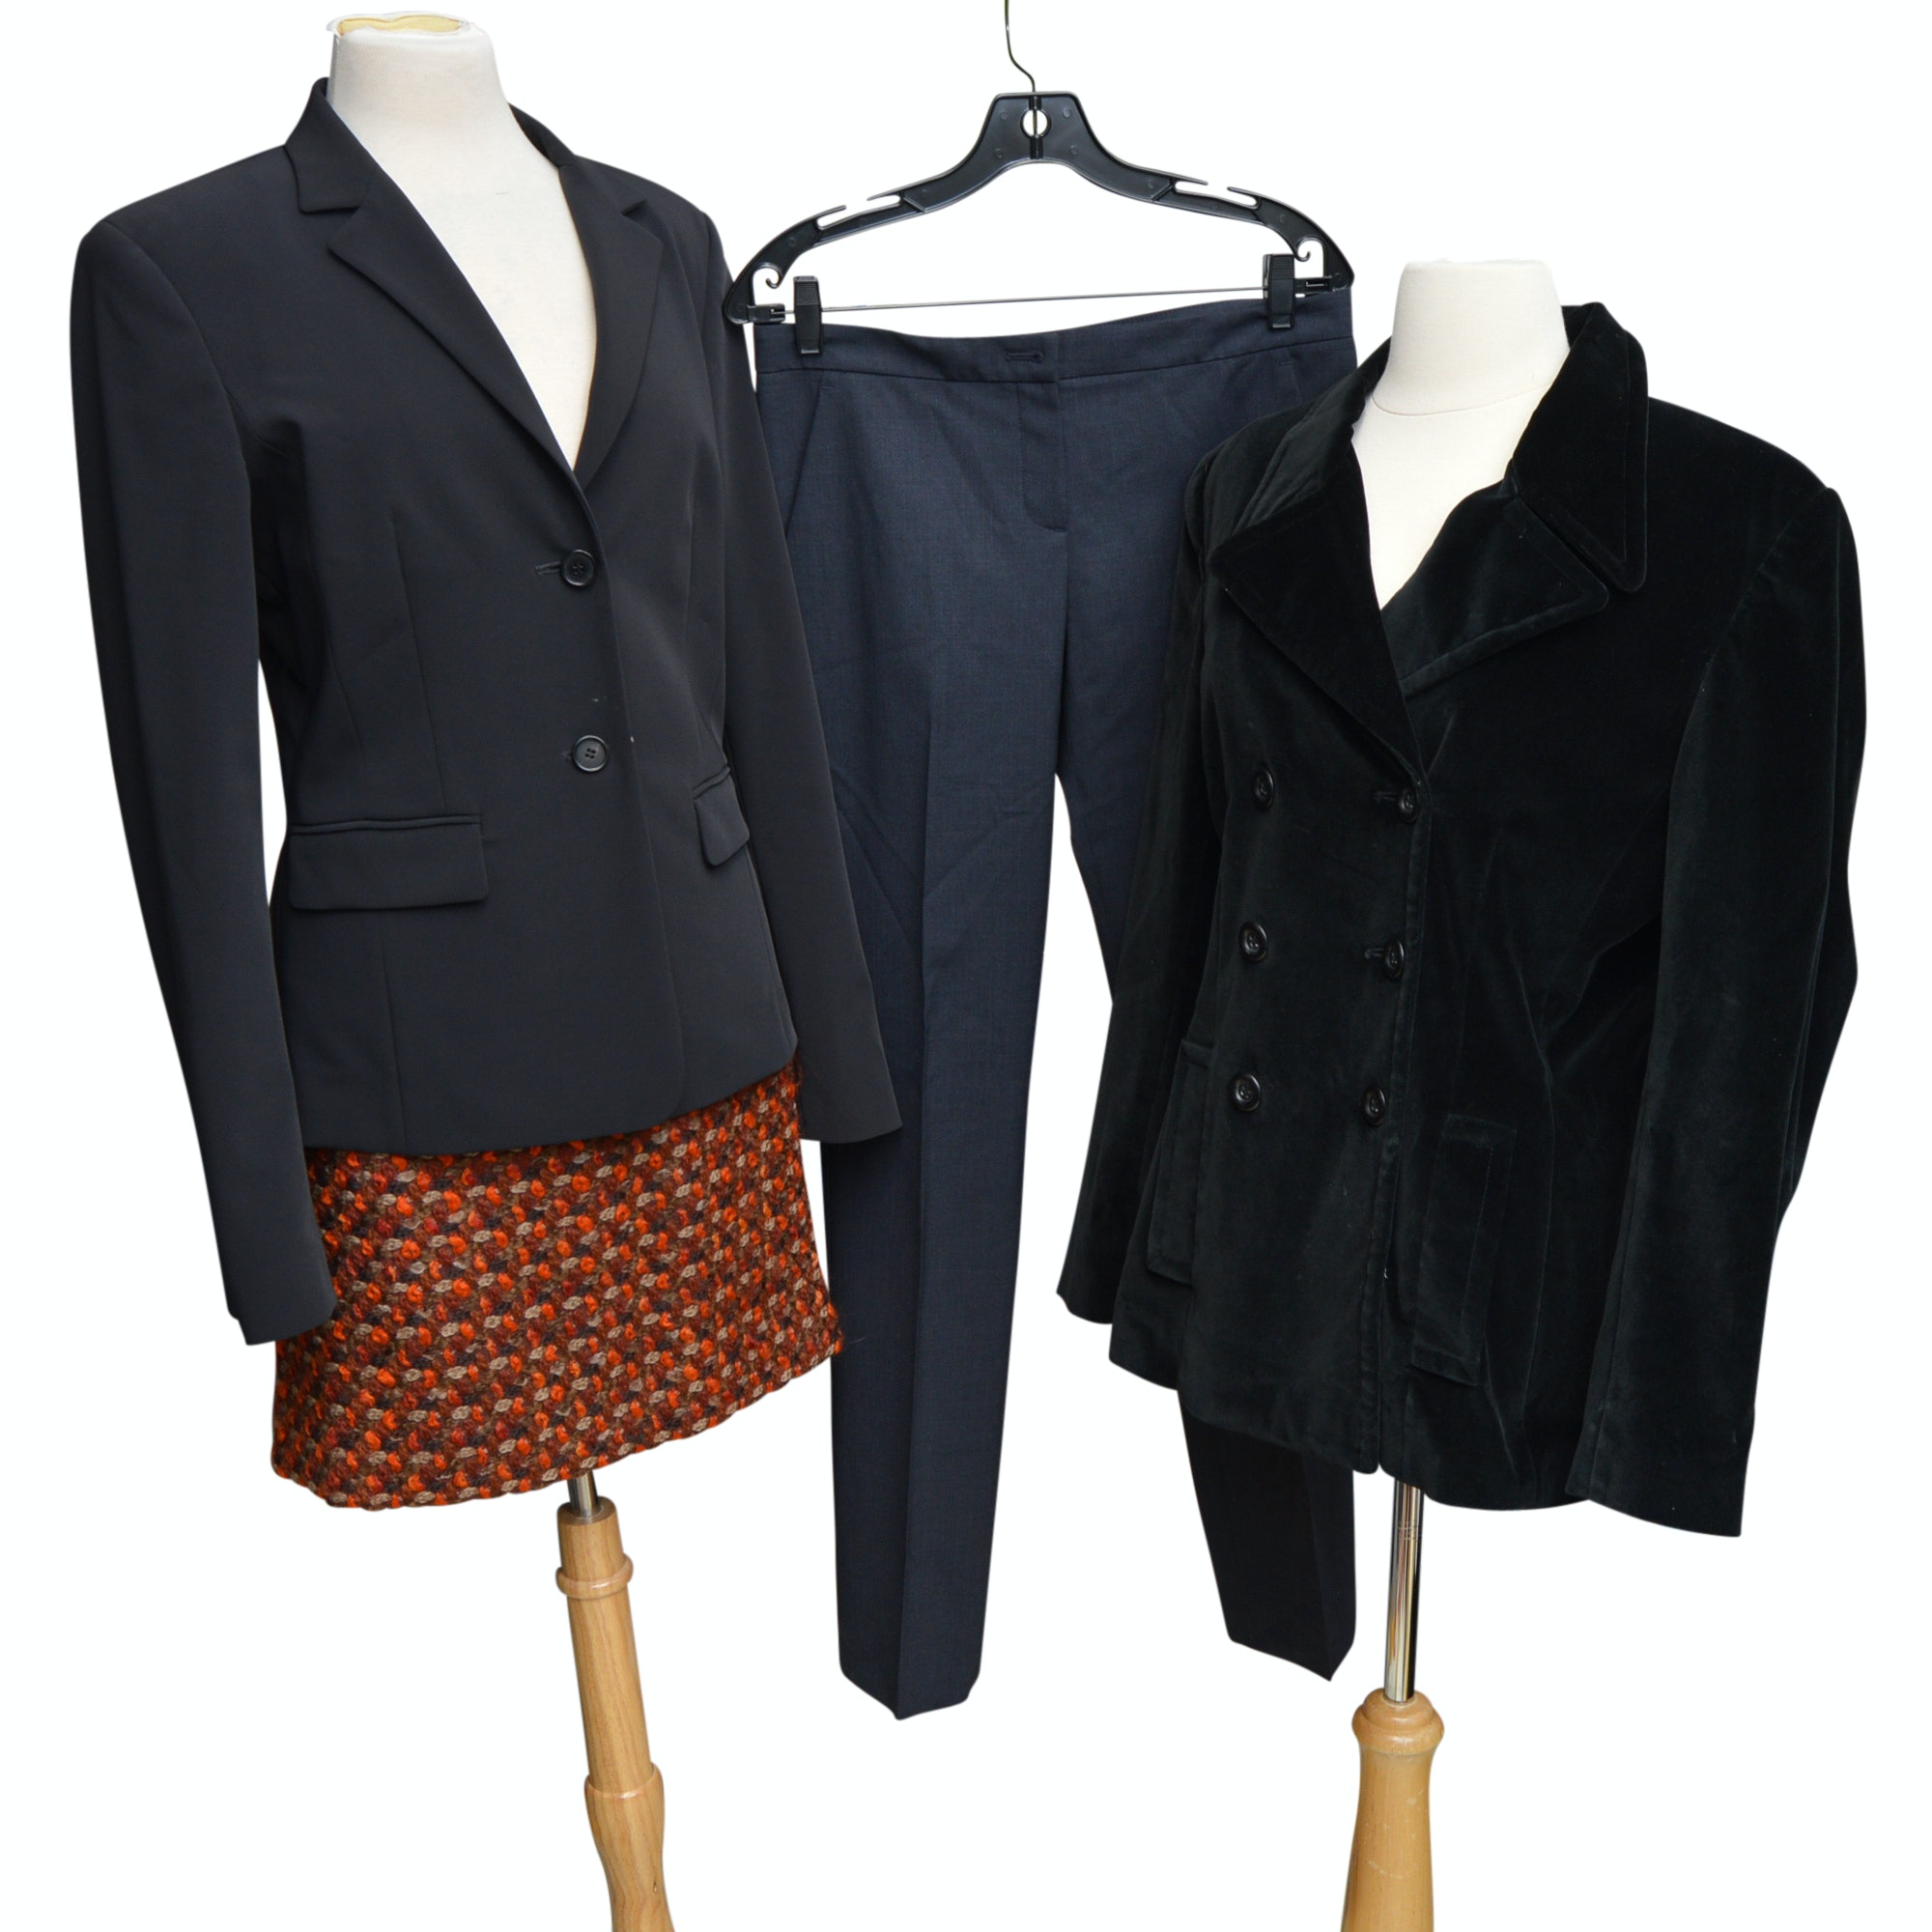 Women's Designer Jackets, Pants and Skirt with Kate Spade, Escada and Theory